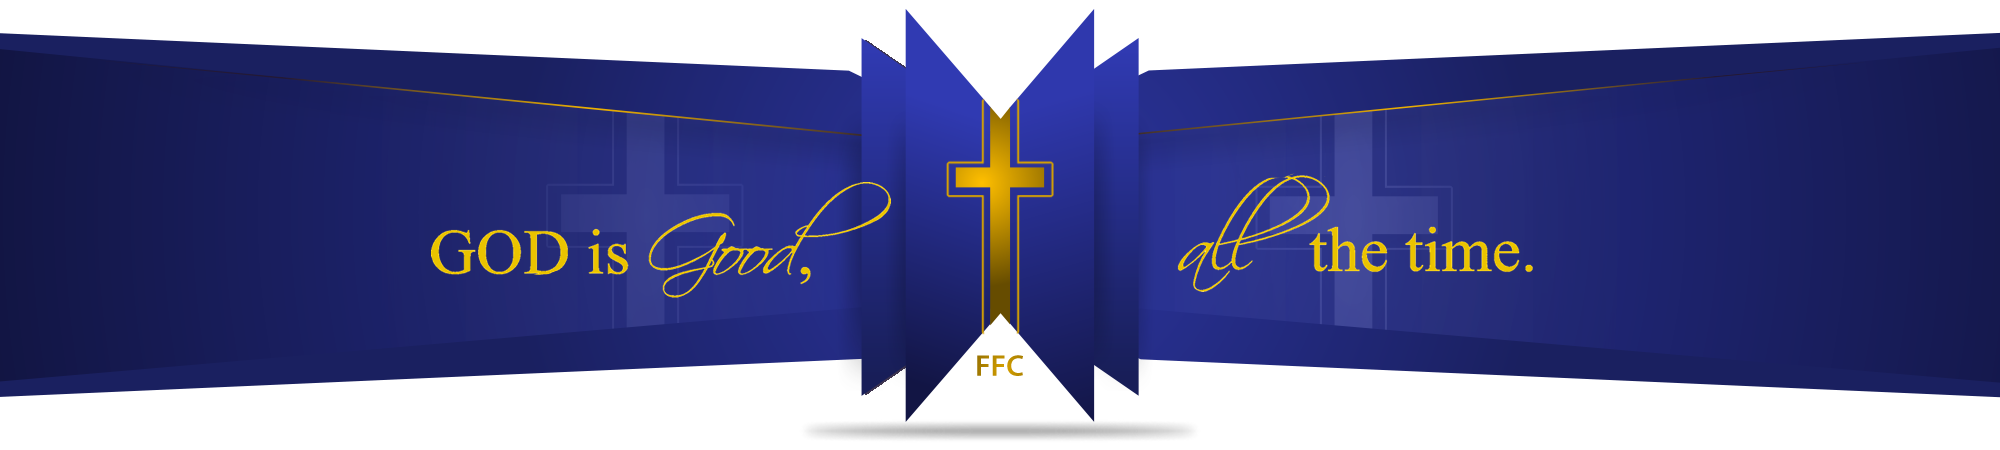 FFC - SLIDER-GodisGOOD-Final.fw